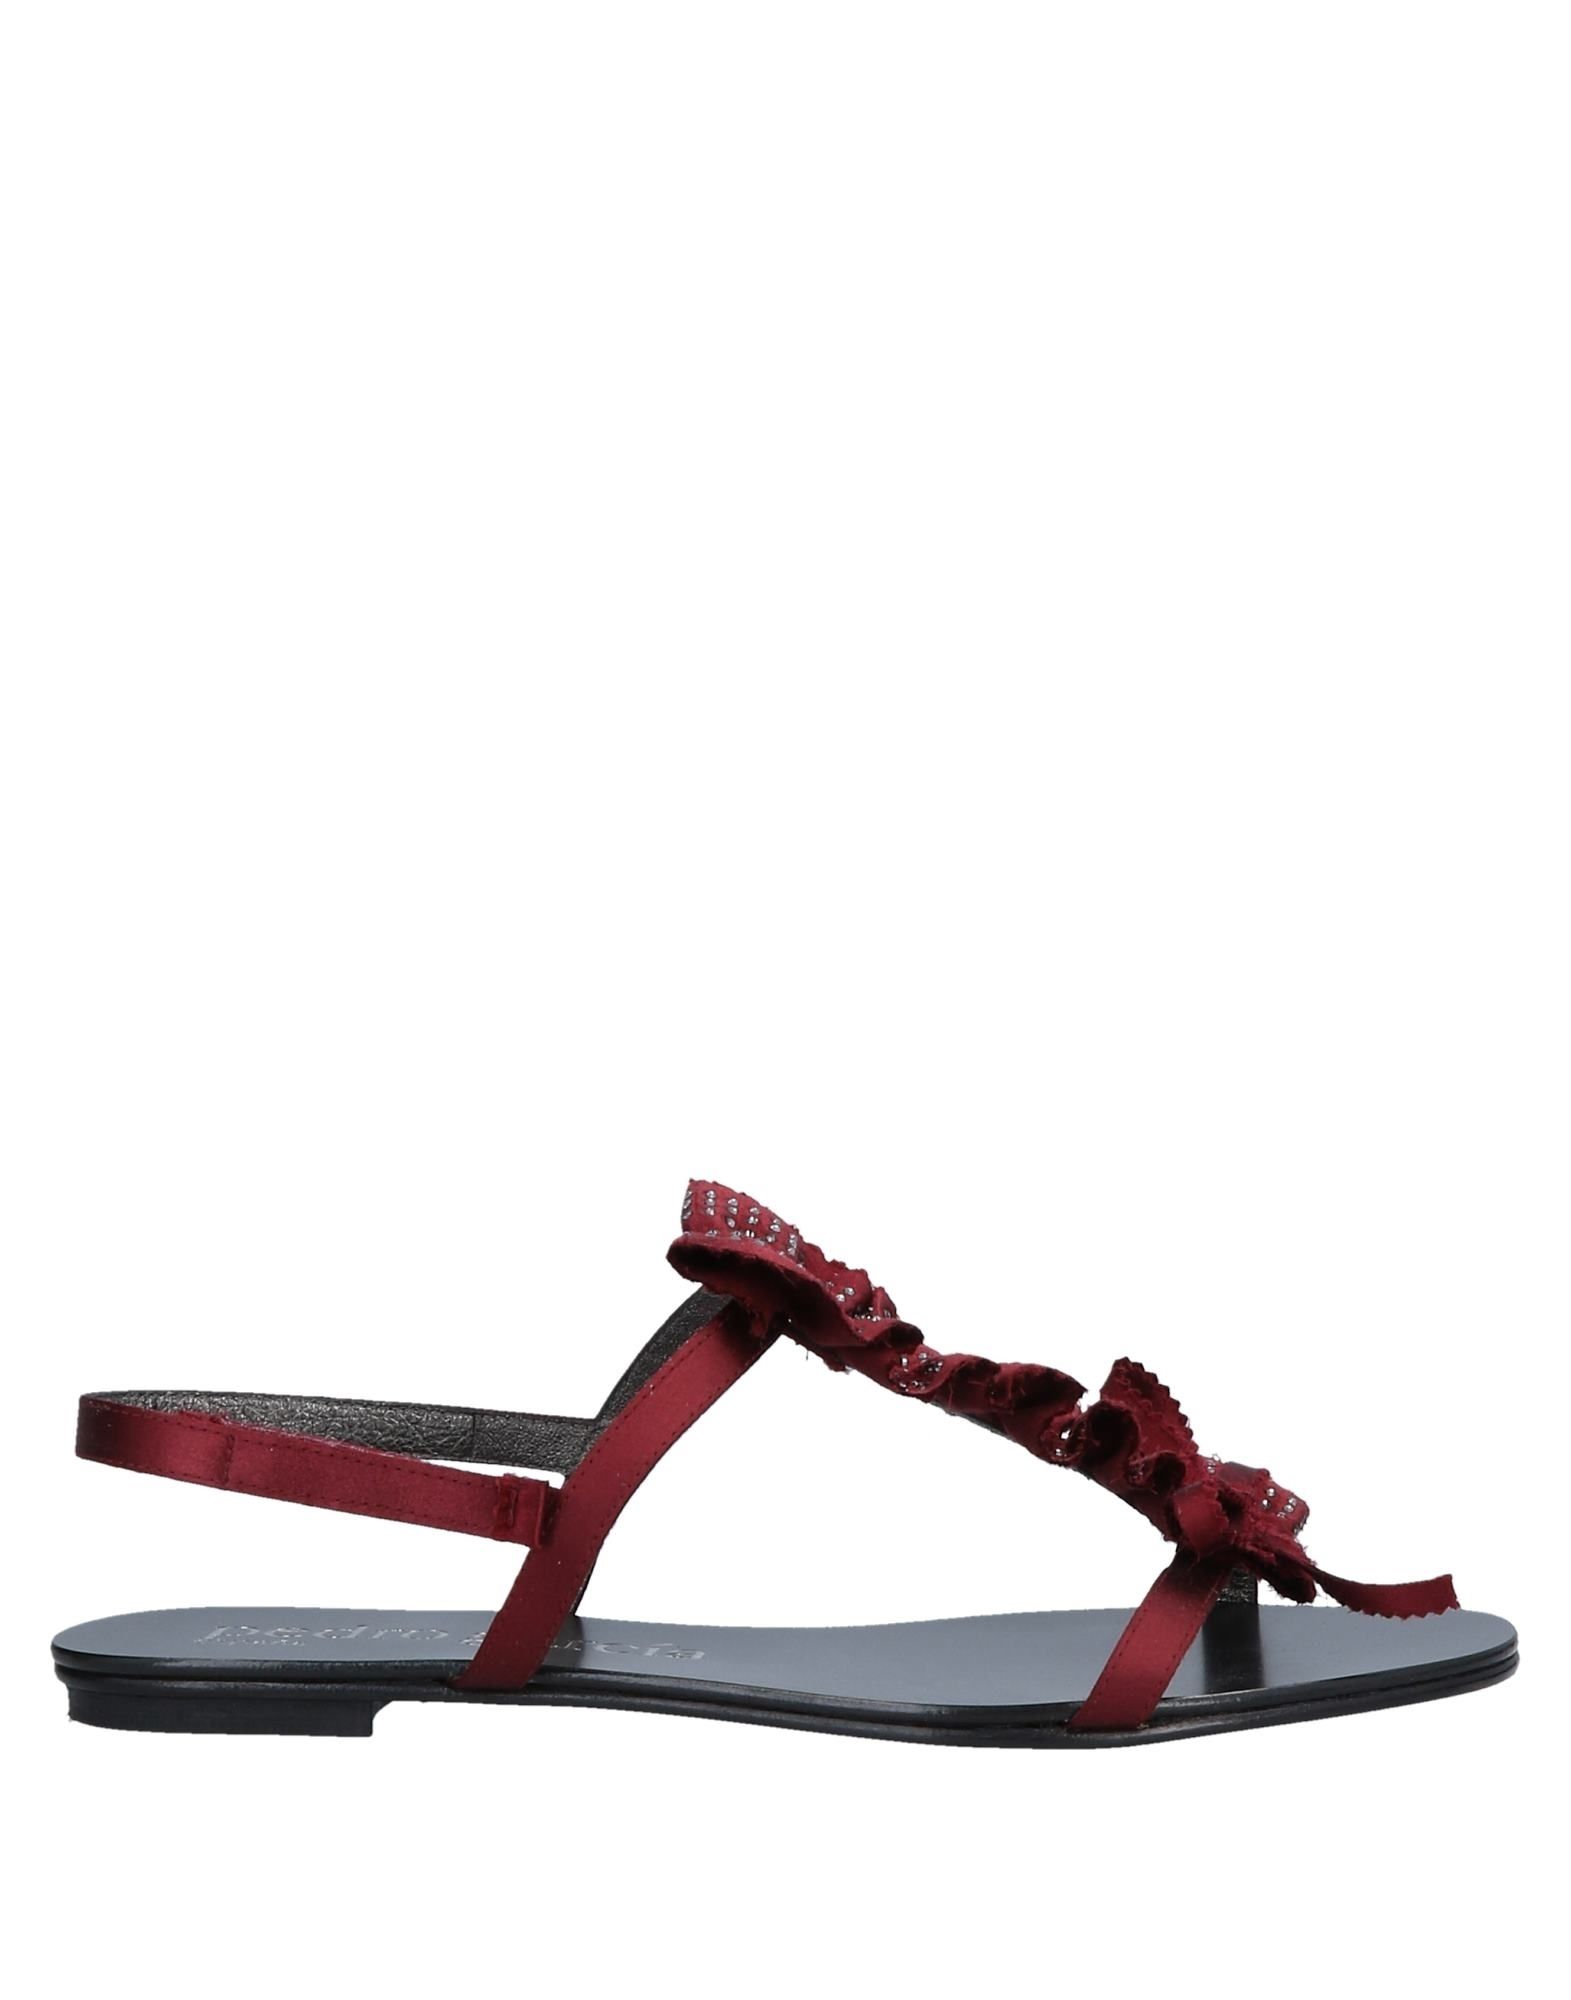 b3039e97af1e Pedro García Sandals - Women Pedro García Sandals online on YOOX ...